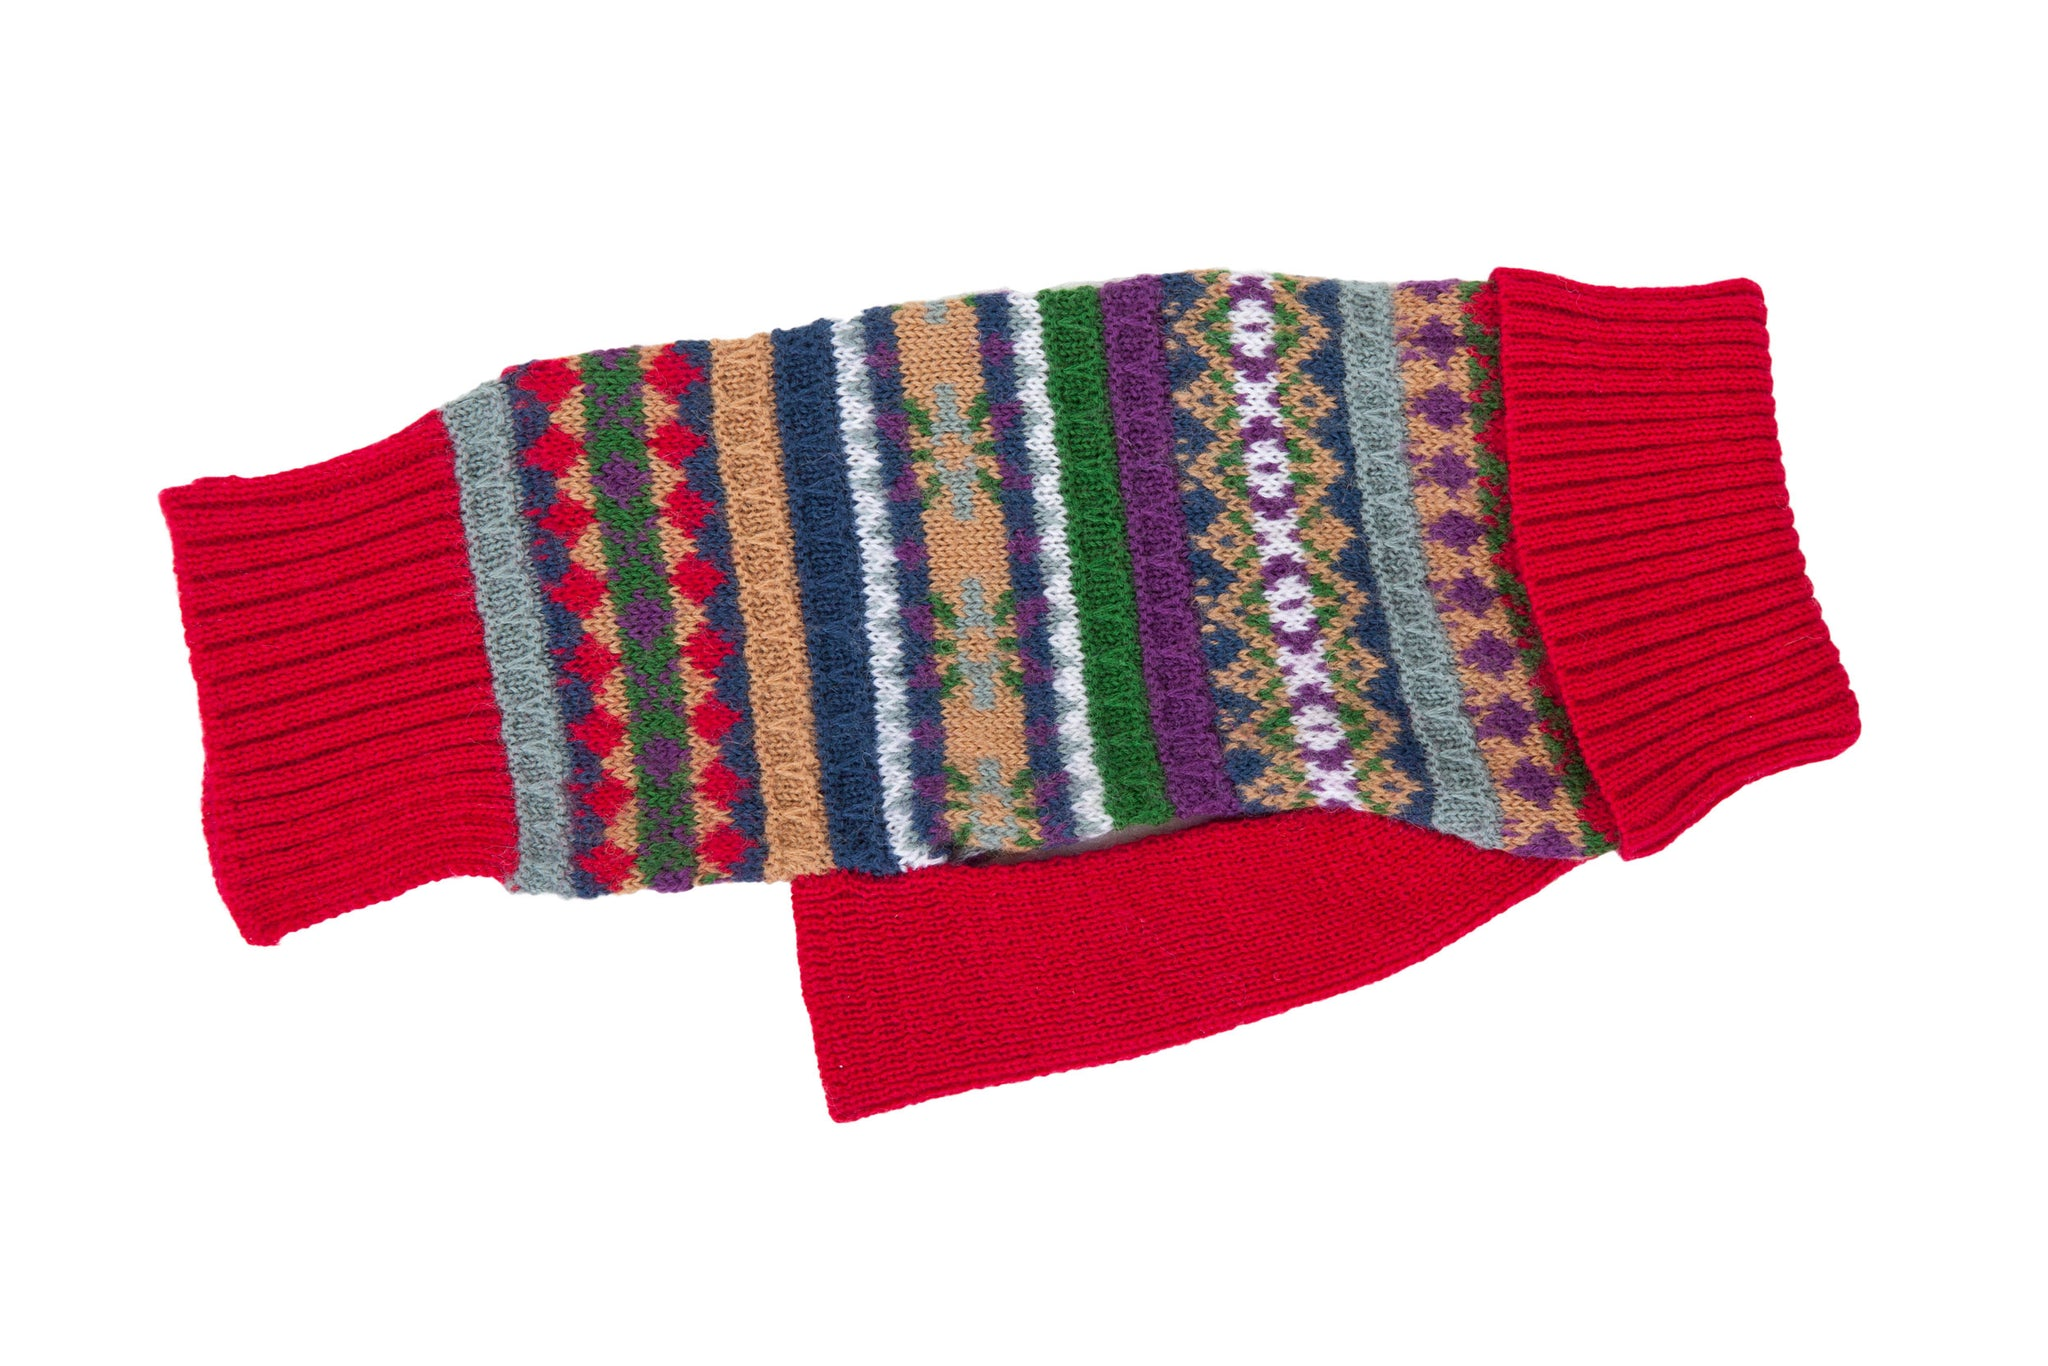 Wool - Buttermilk Red Dog Sweaters